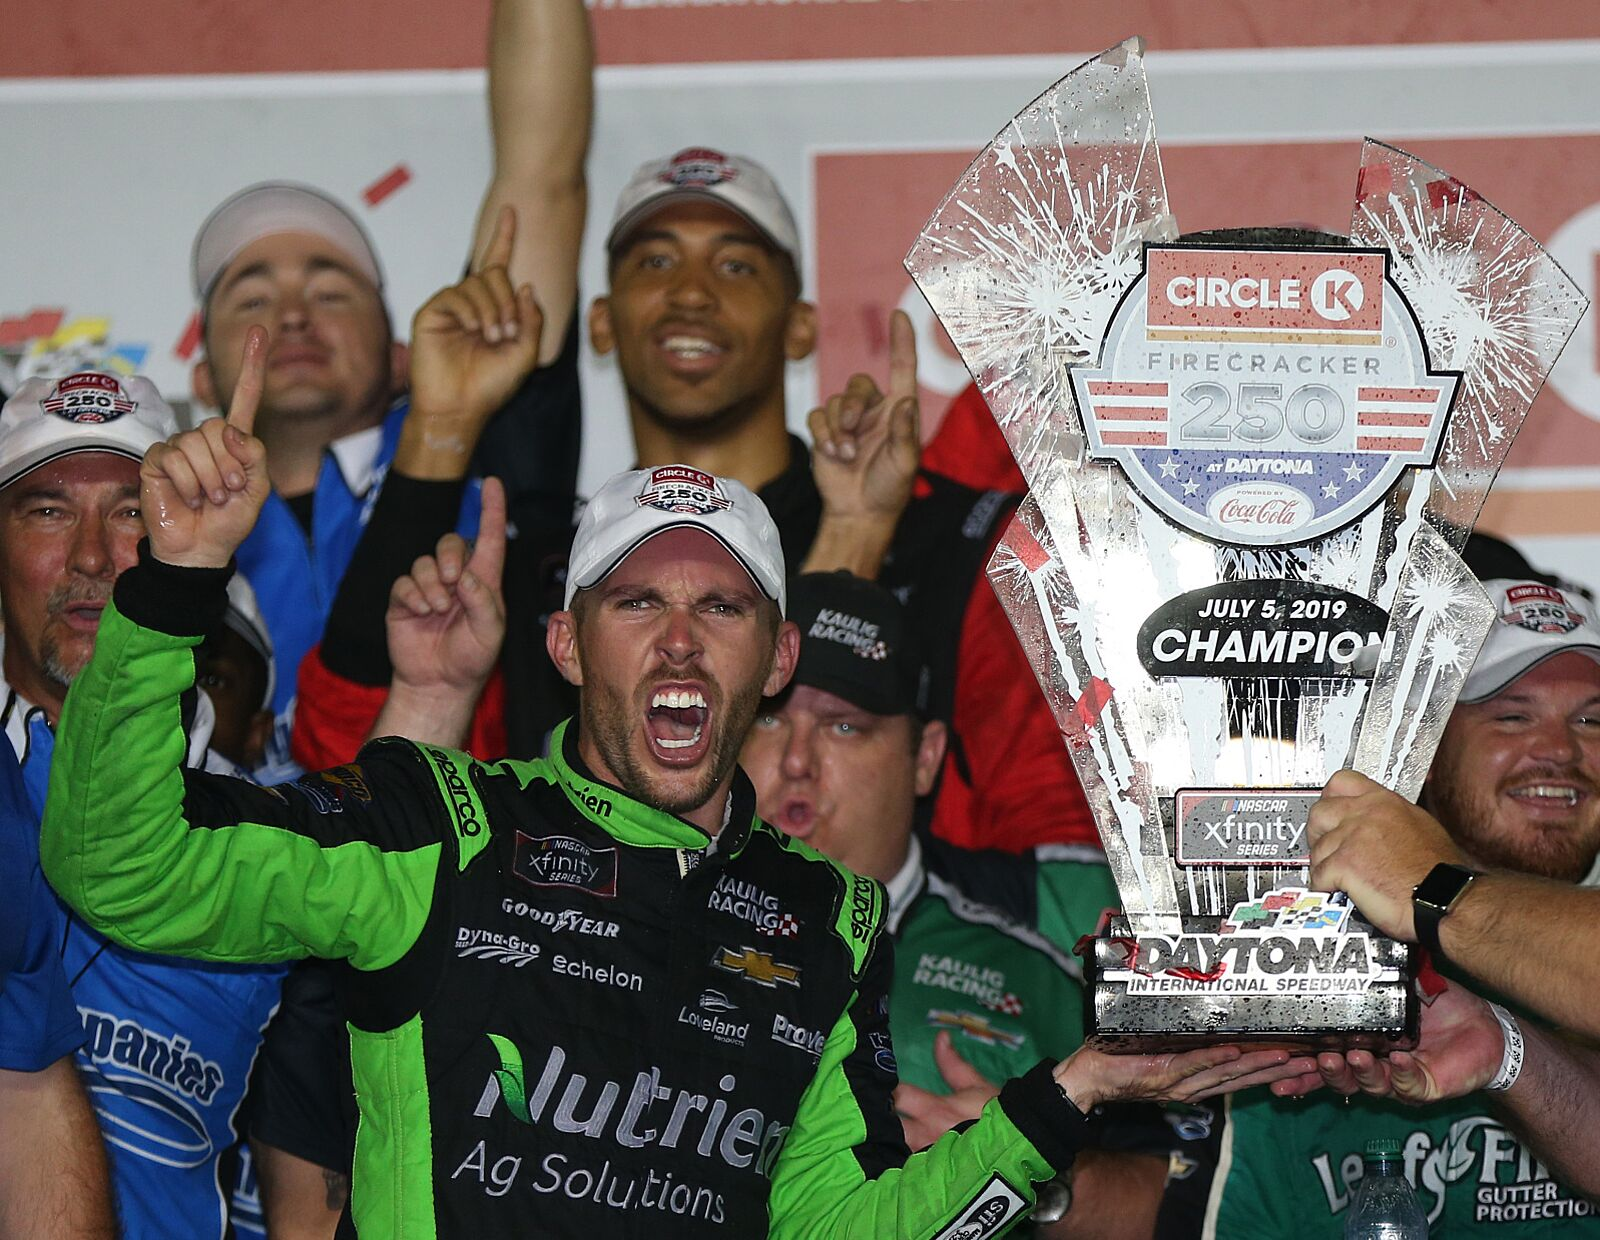 NASCAR: 3 possible landing spots for Ross Chastain in 2020